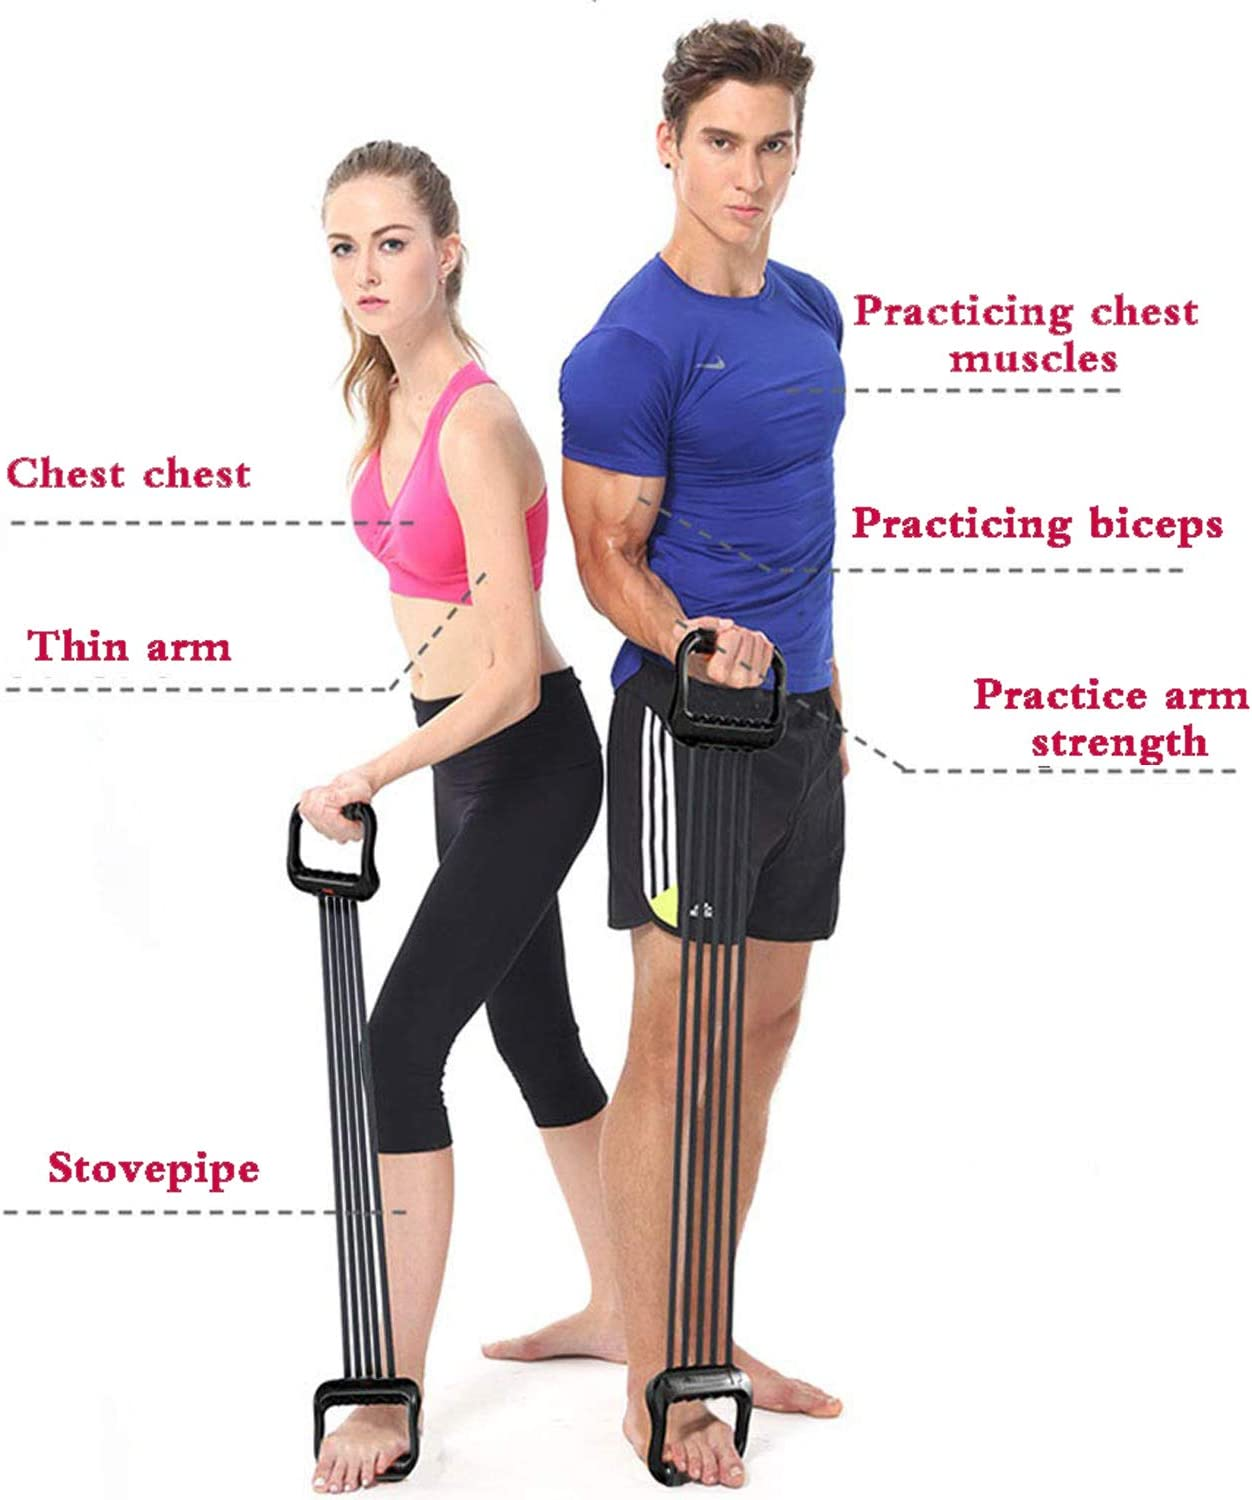 Chest Expanders Resistance Bands 5 Detachable Emulsion Fitness Tubes Adjustable Pull for Home Gym Muscle Training Exerciser 5x15 lbs Black